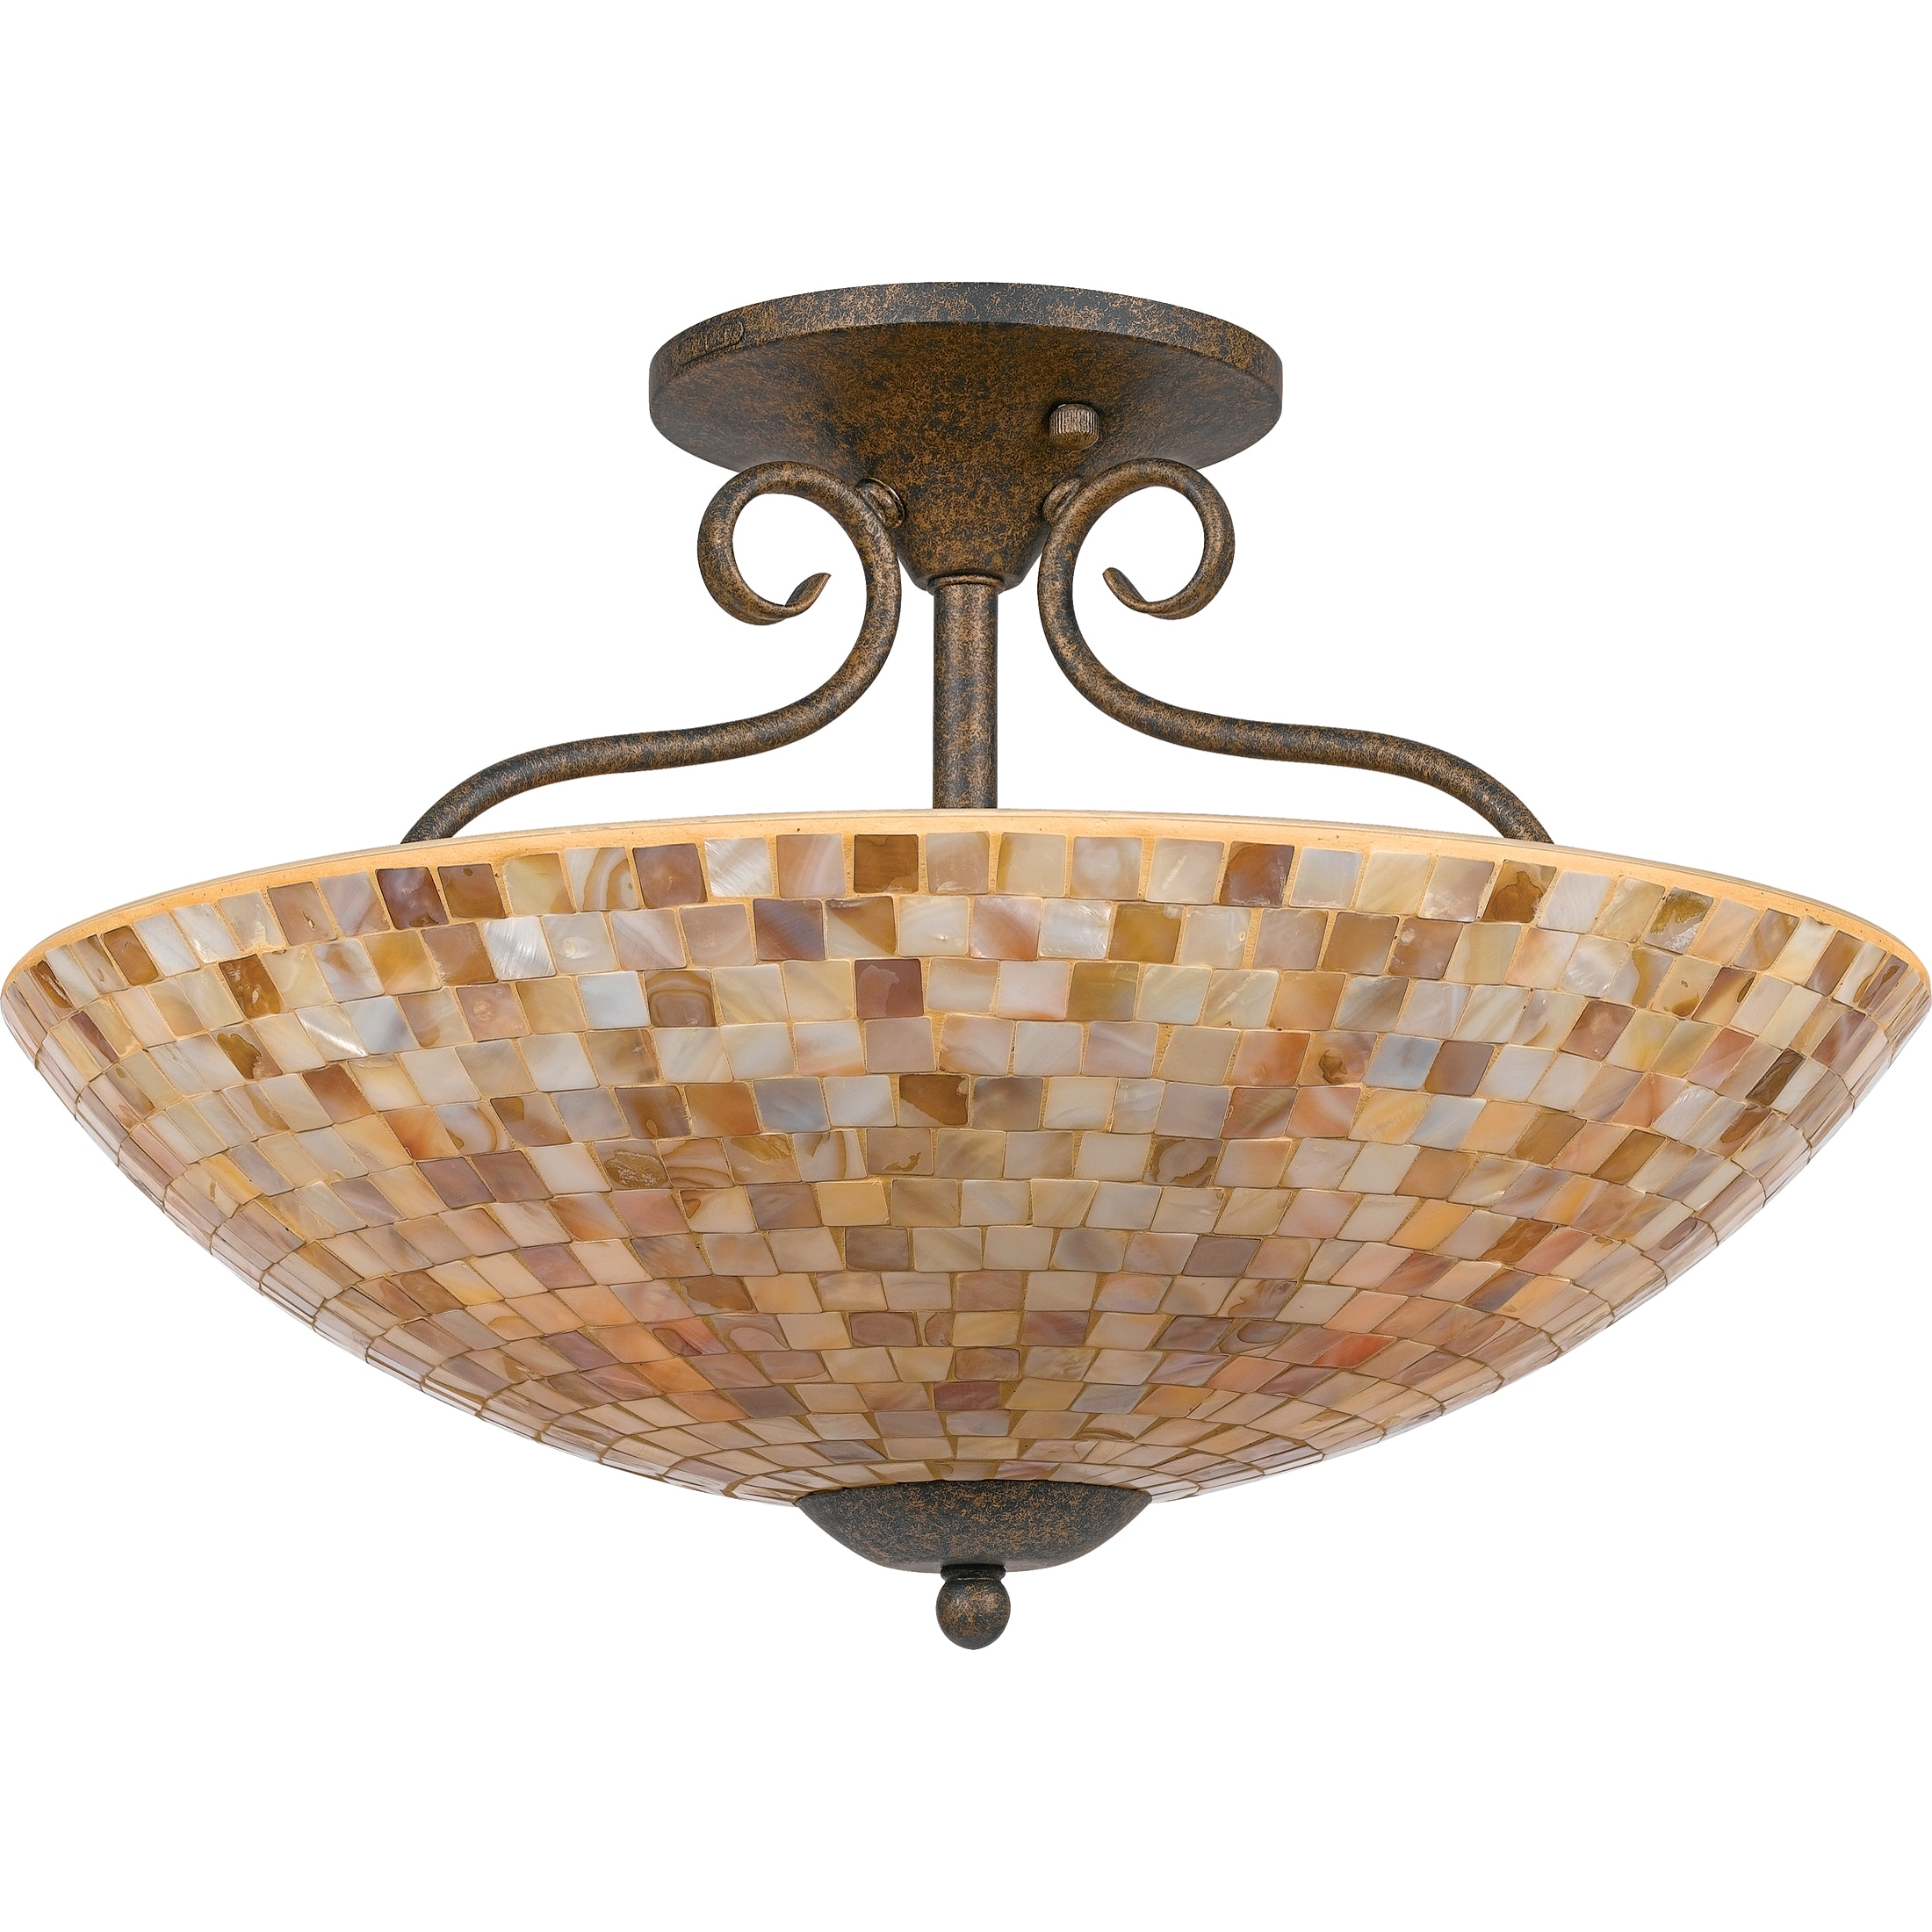 Quoizel 'Monterey Mosaic' 4-light Semi-flush Mount